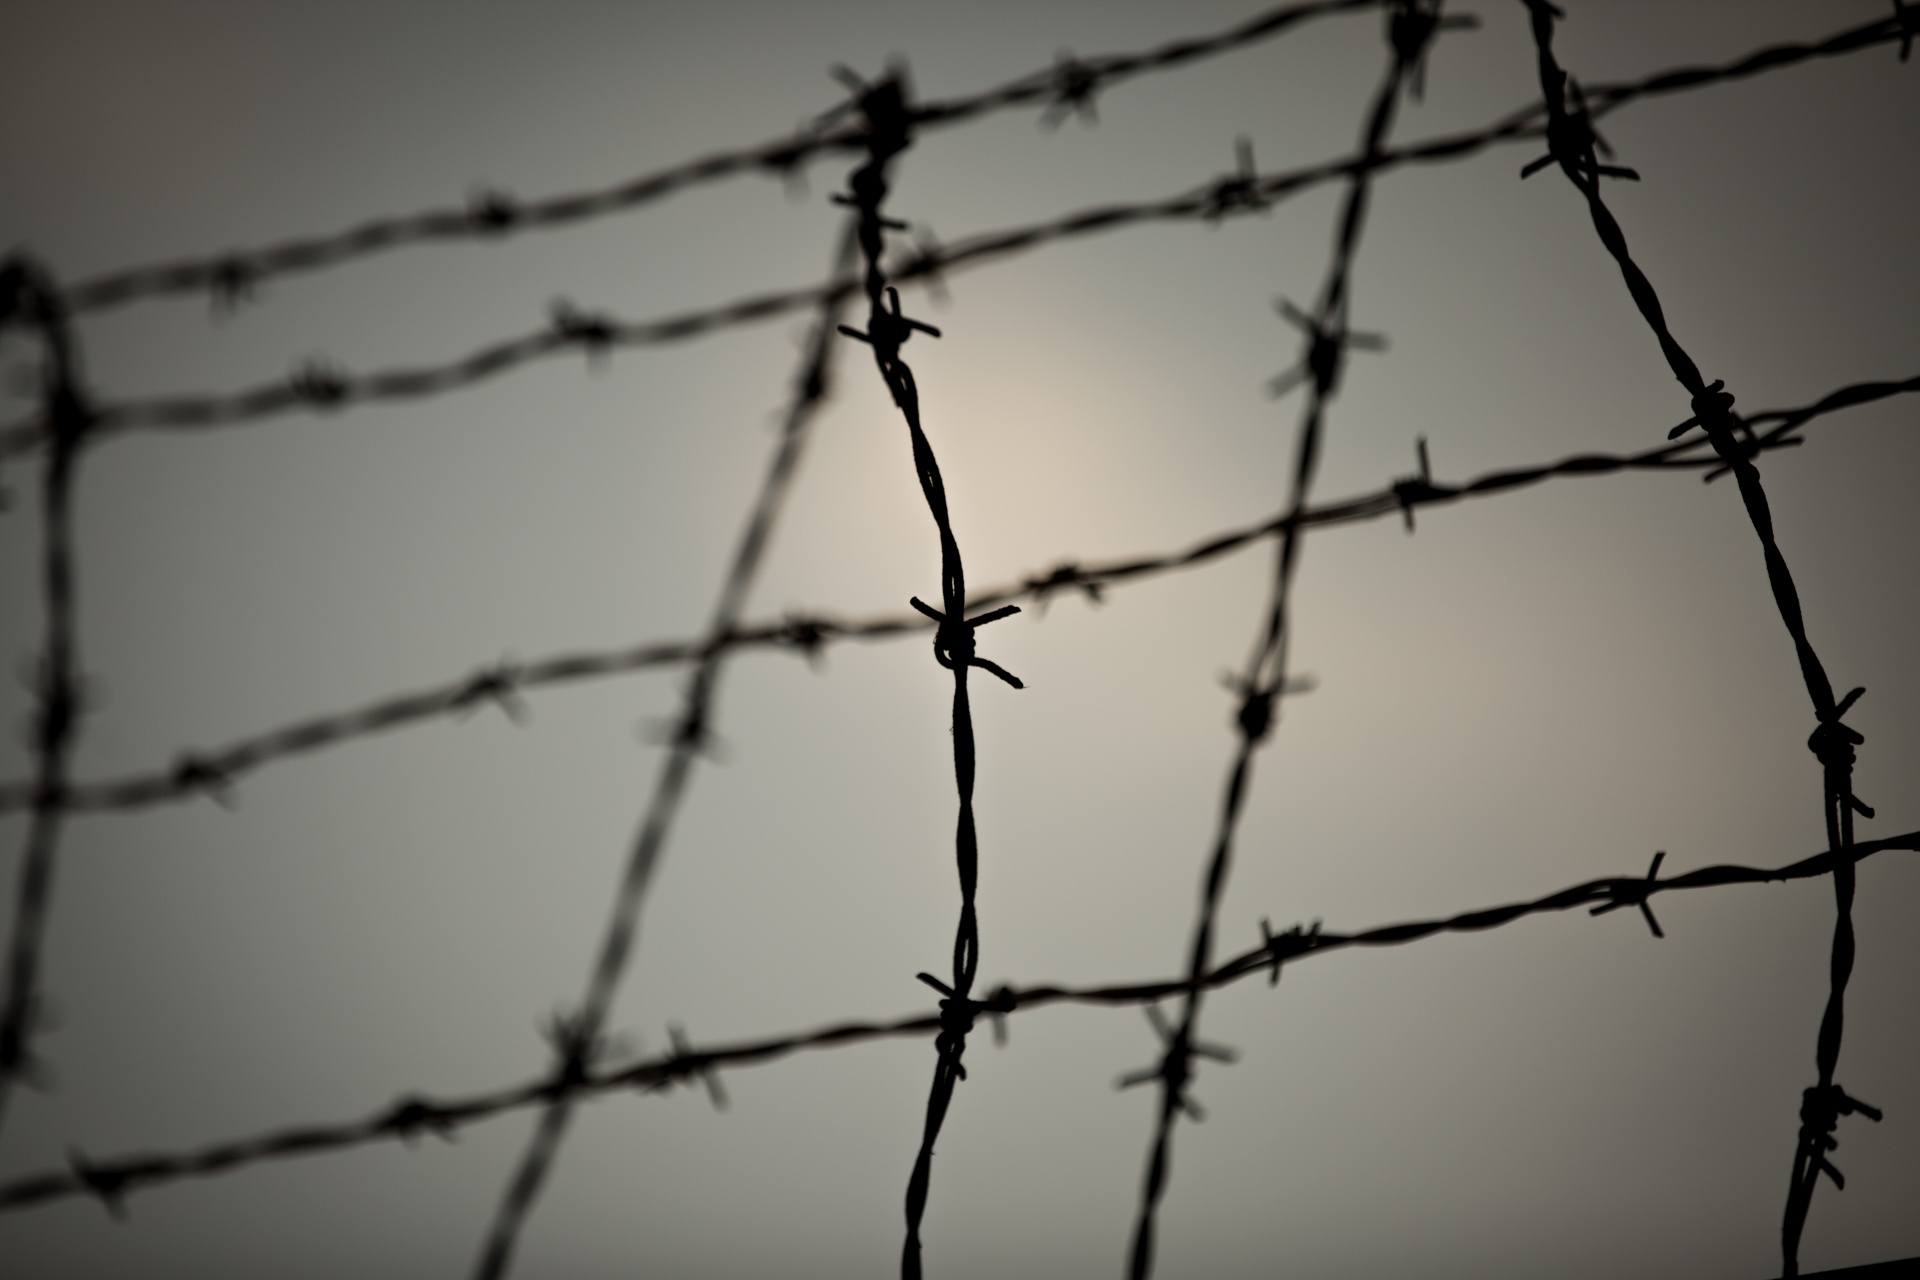 Barbed Wire Free Stock Photo - Public Domain Pictures